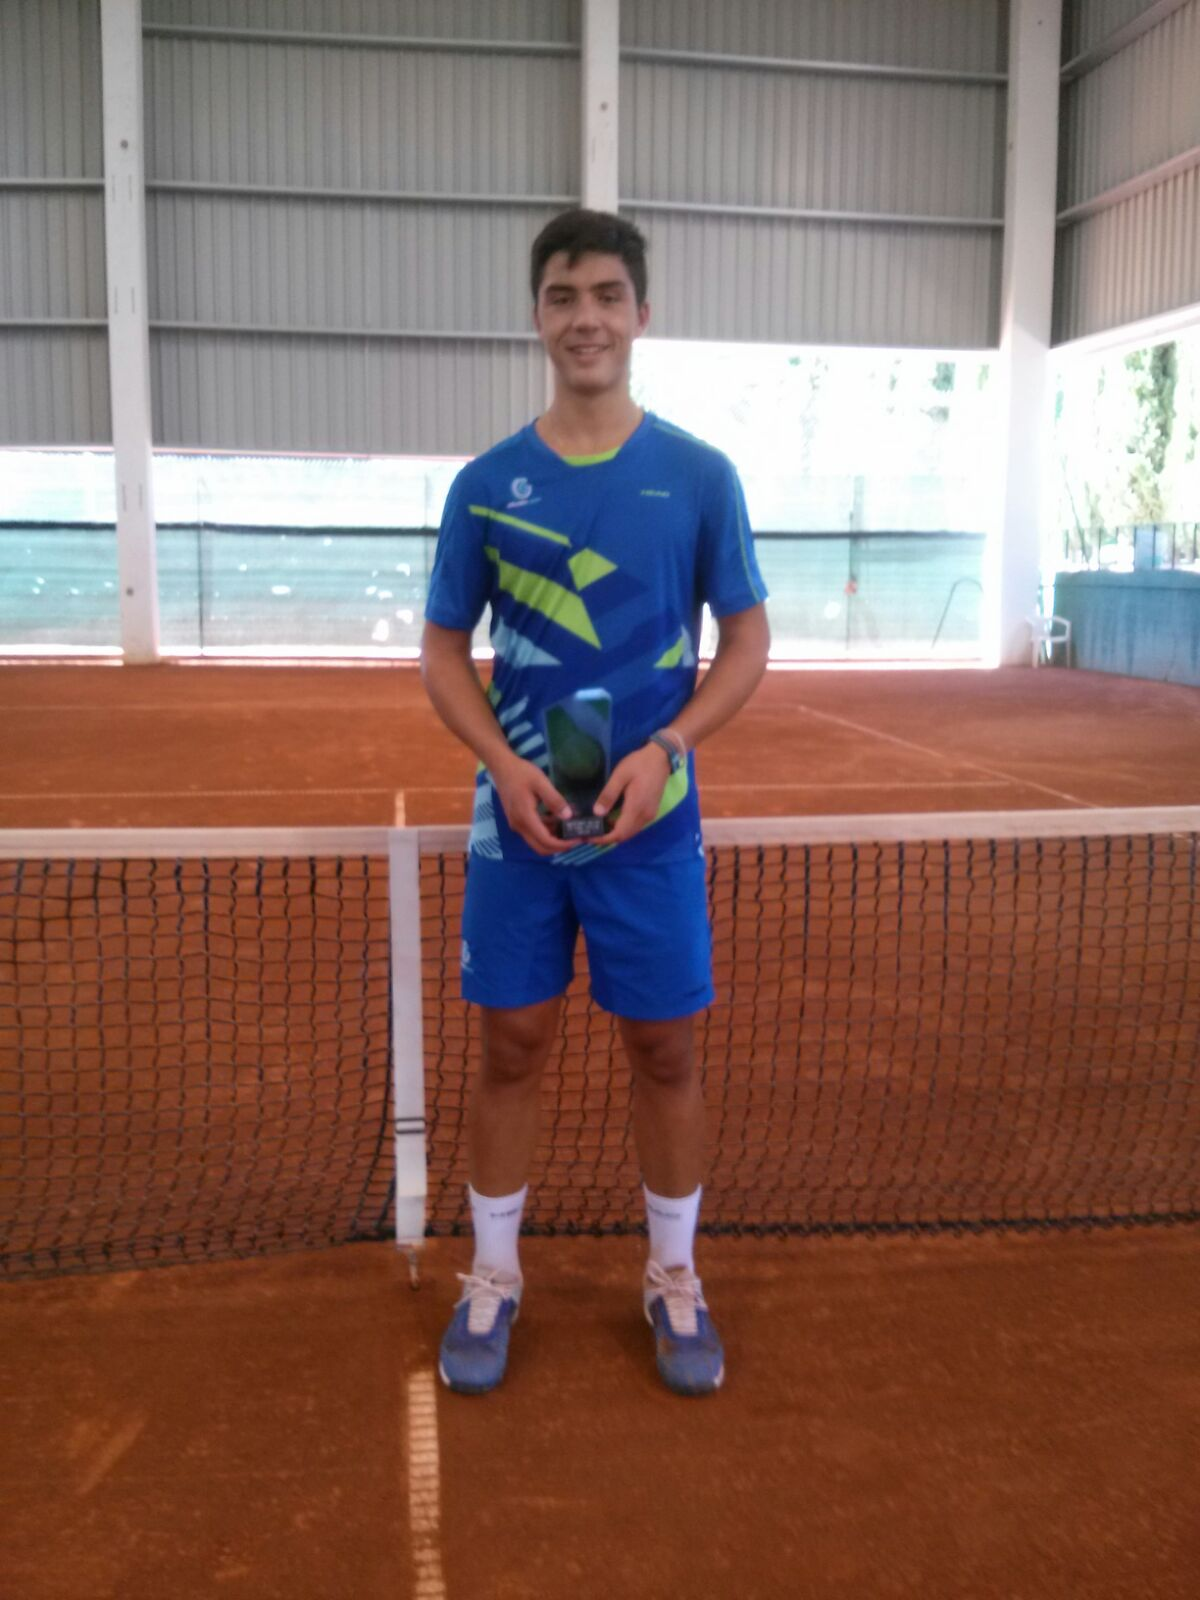 David Campeon Tarazona